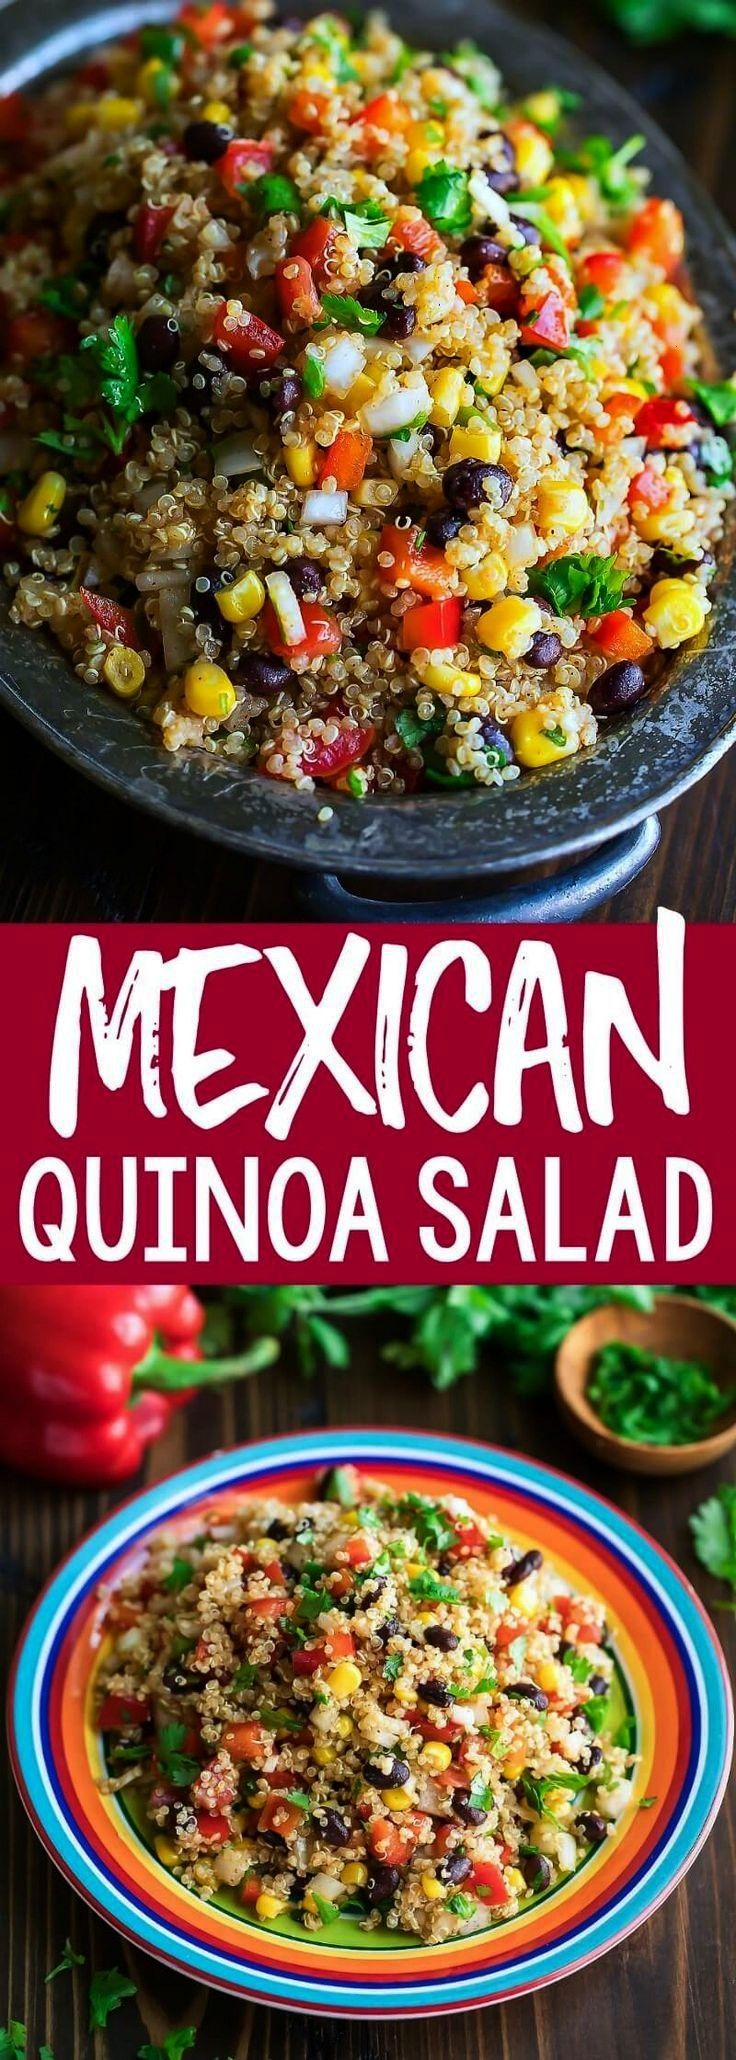 healthy Mexican Quinoa Salad is a quick easy and gloriously makeahead dish Tossed in a speedy homemade chili lime dressing this fiesta quinoa bowl is full of flavorThis h...